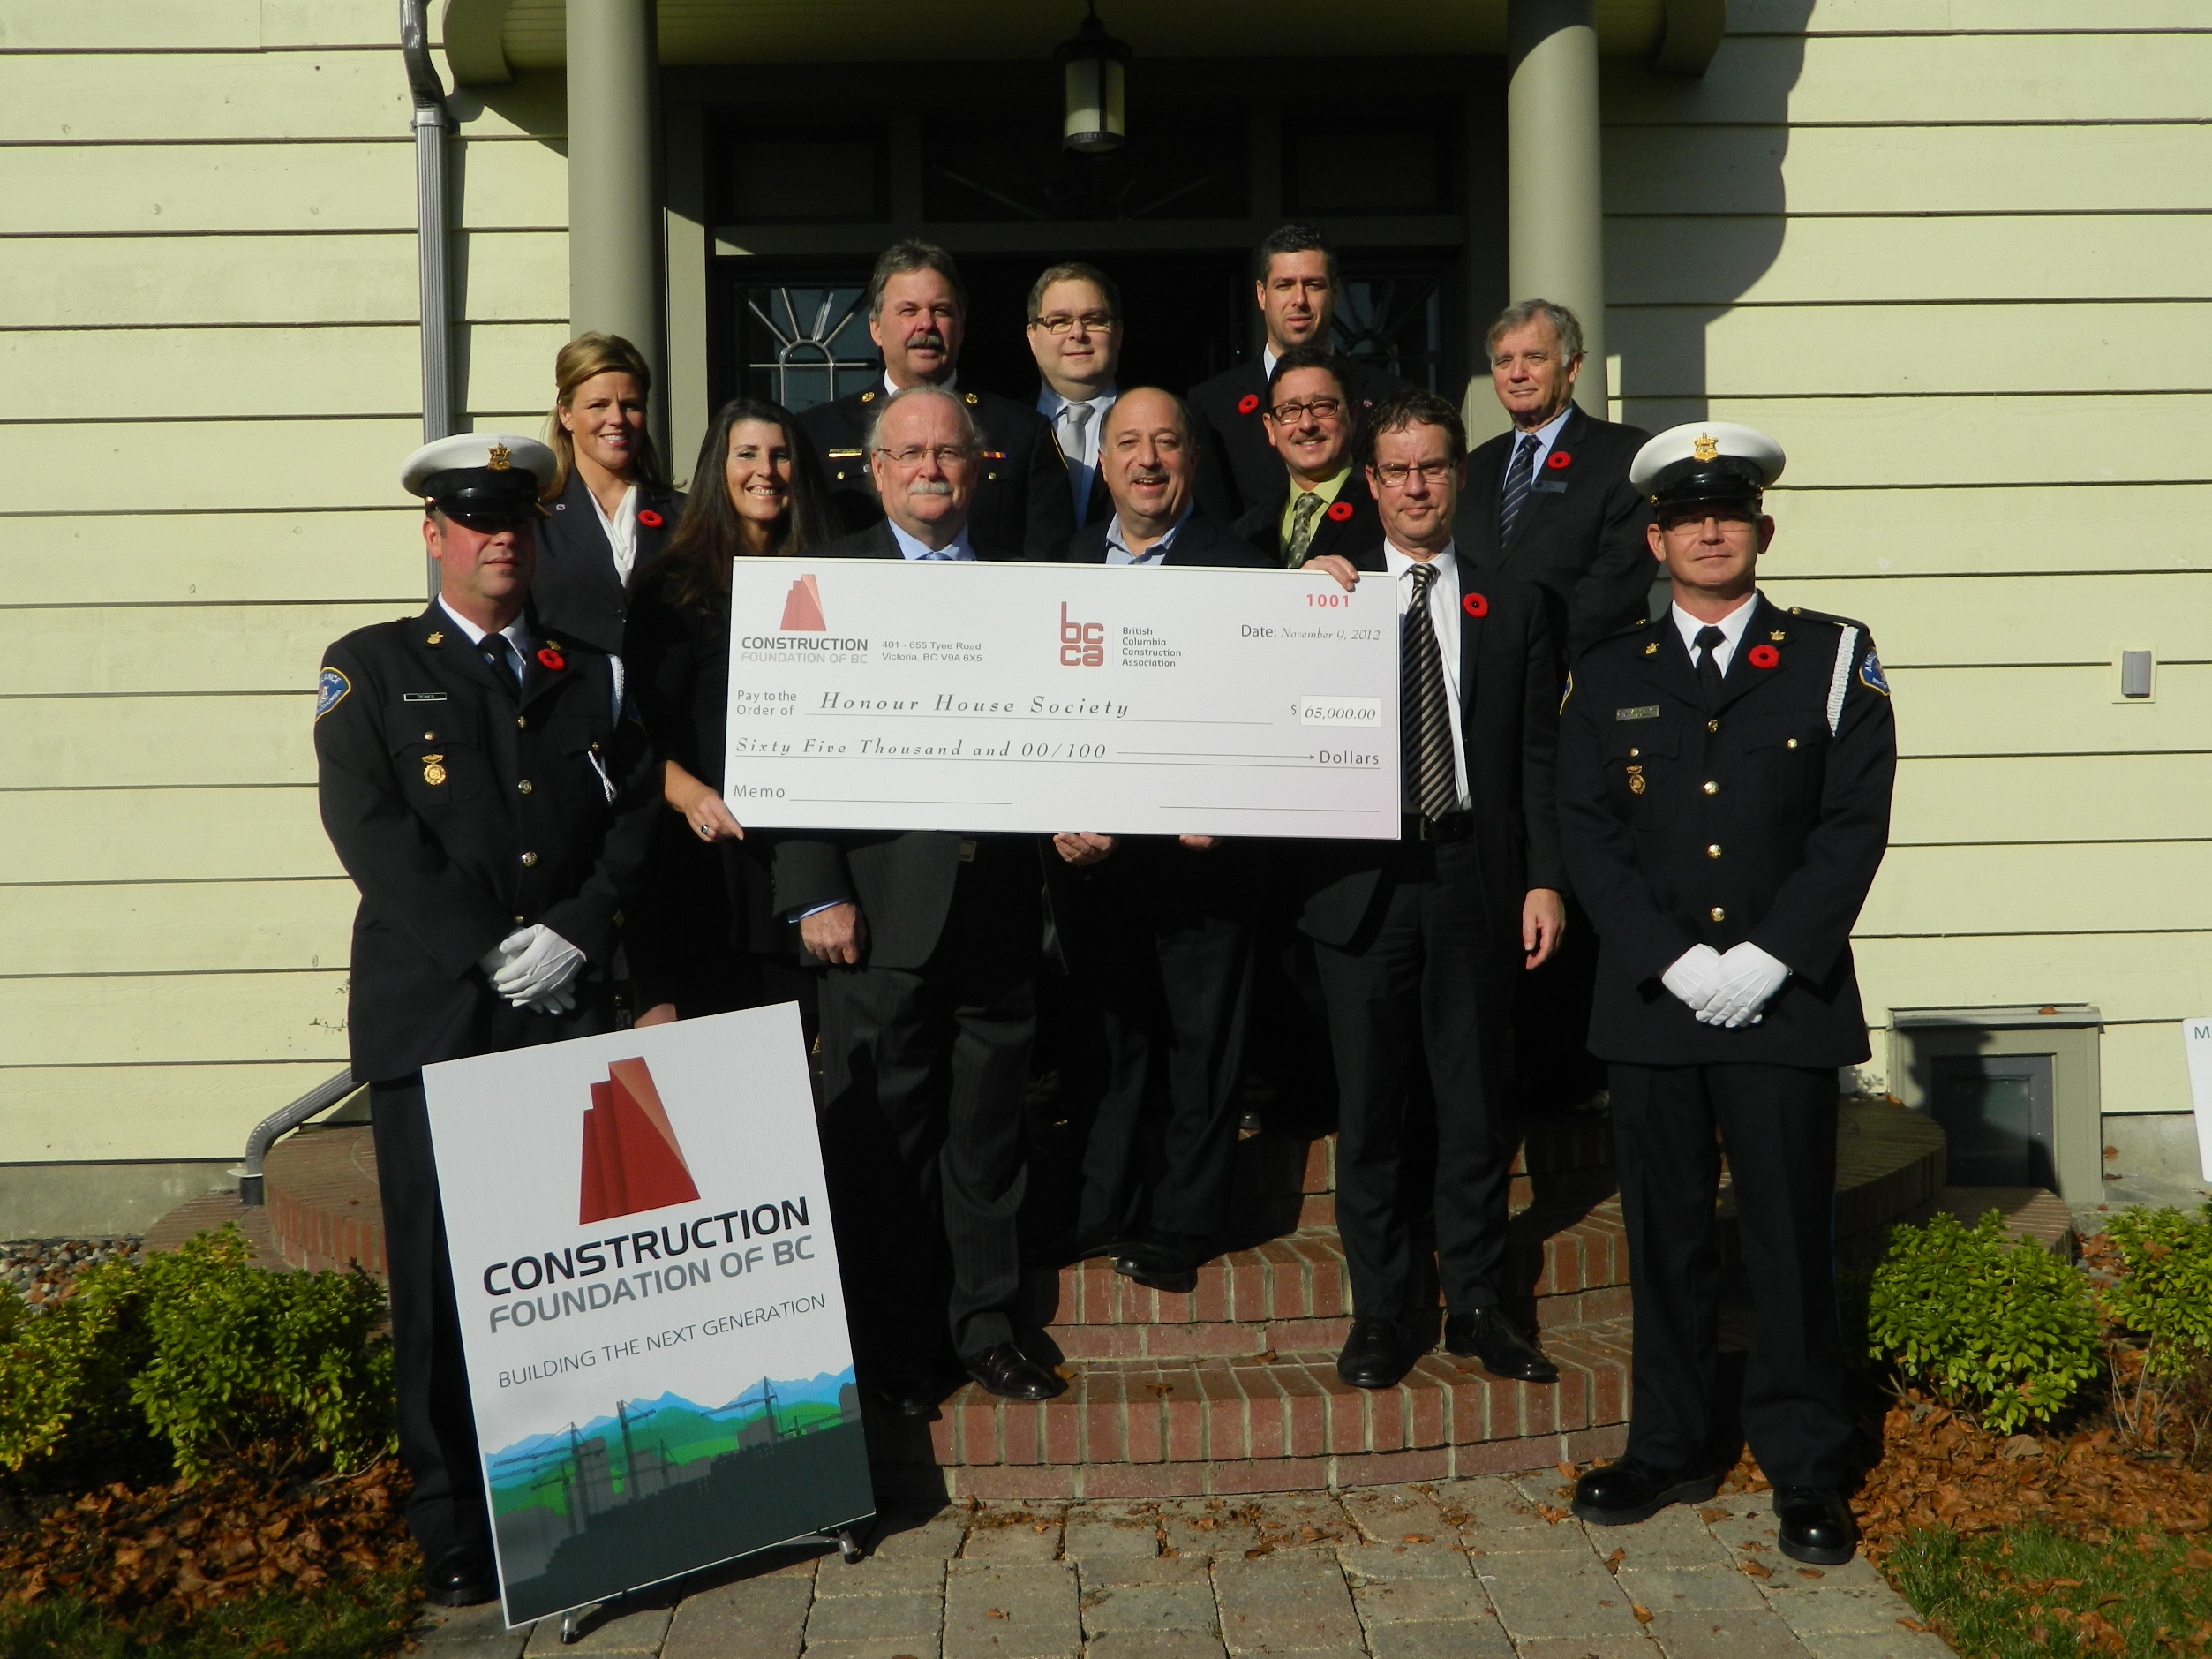 November 2012 Donation to Honour House